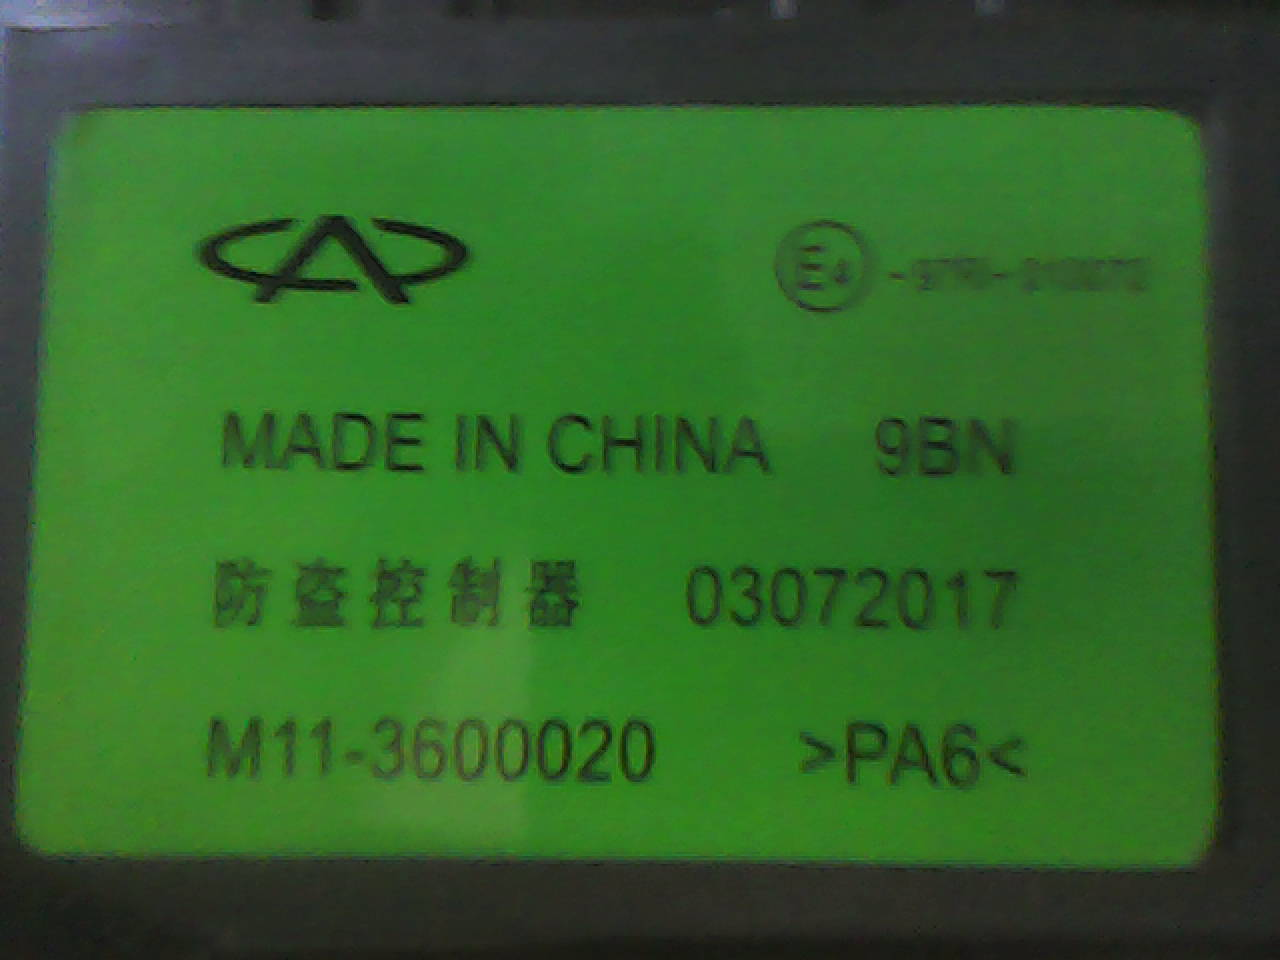 Chery M11-3600020 03072017 immo clear